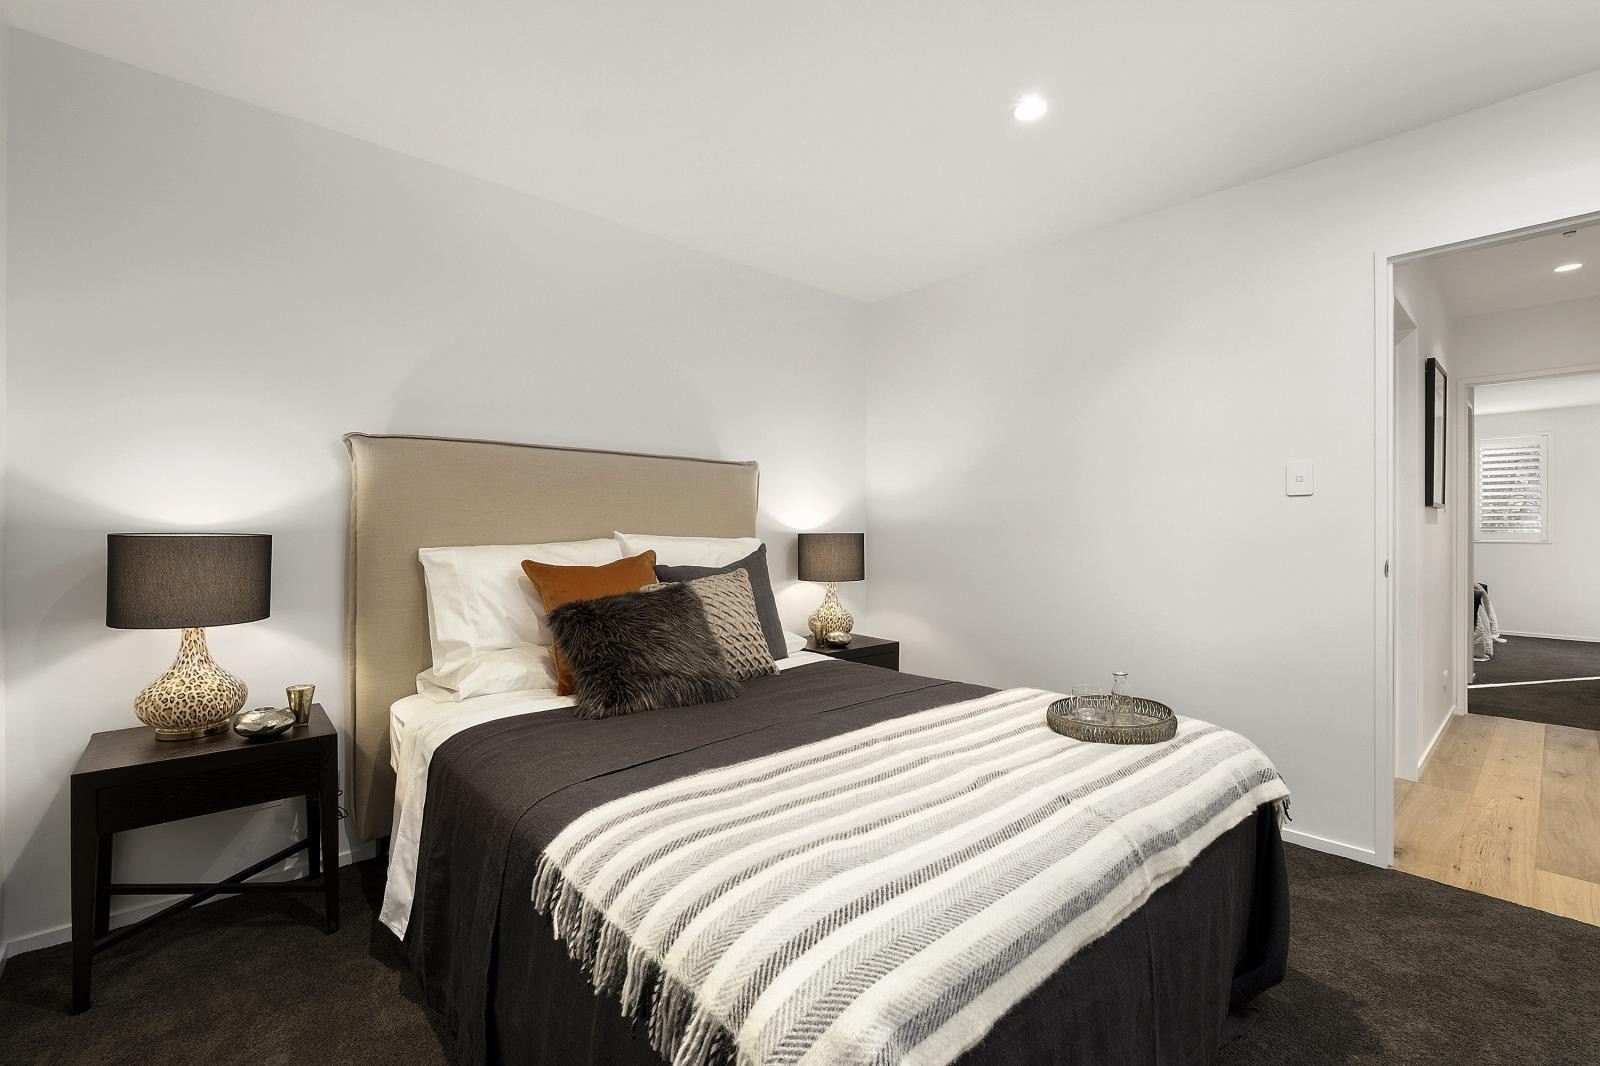 Townhouse Bedroom 2